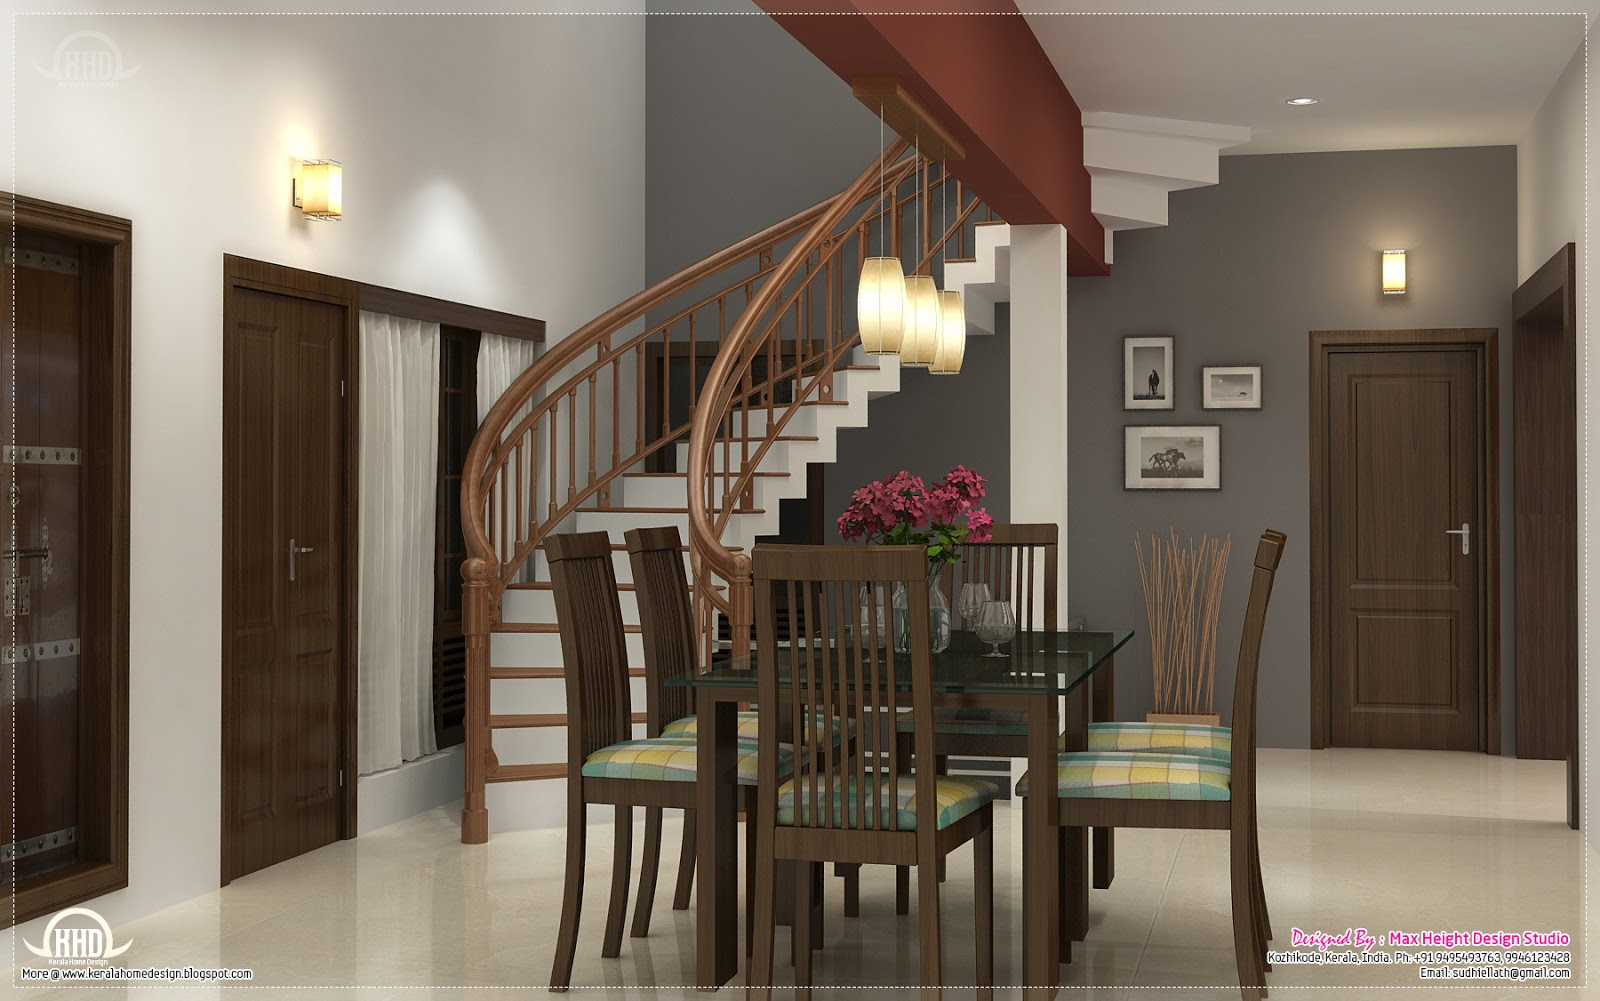 Home interior design ideas kerala home design and floor for Home design ideas